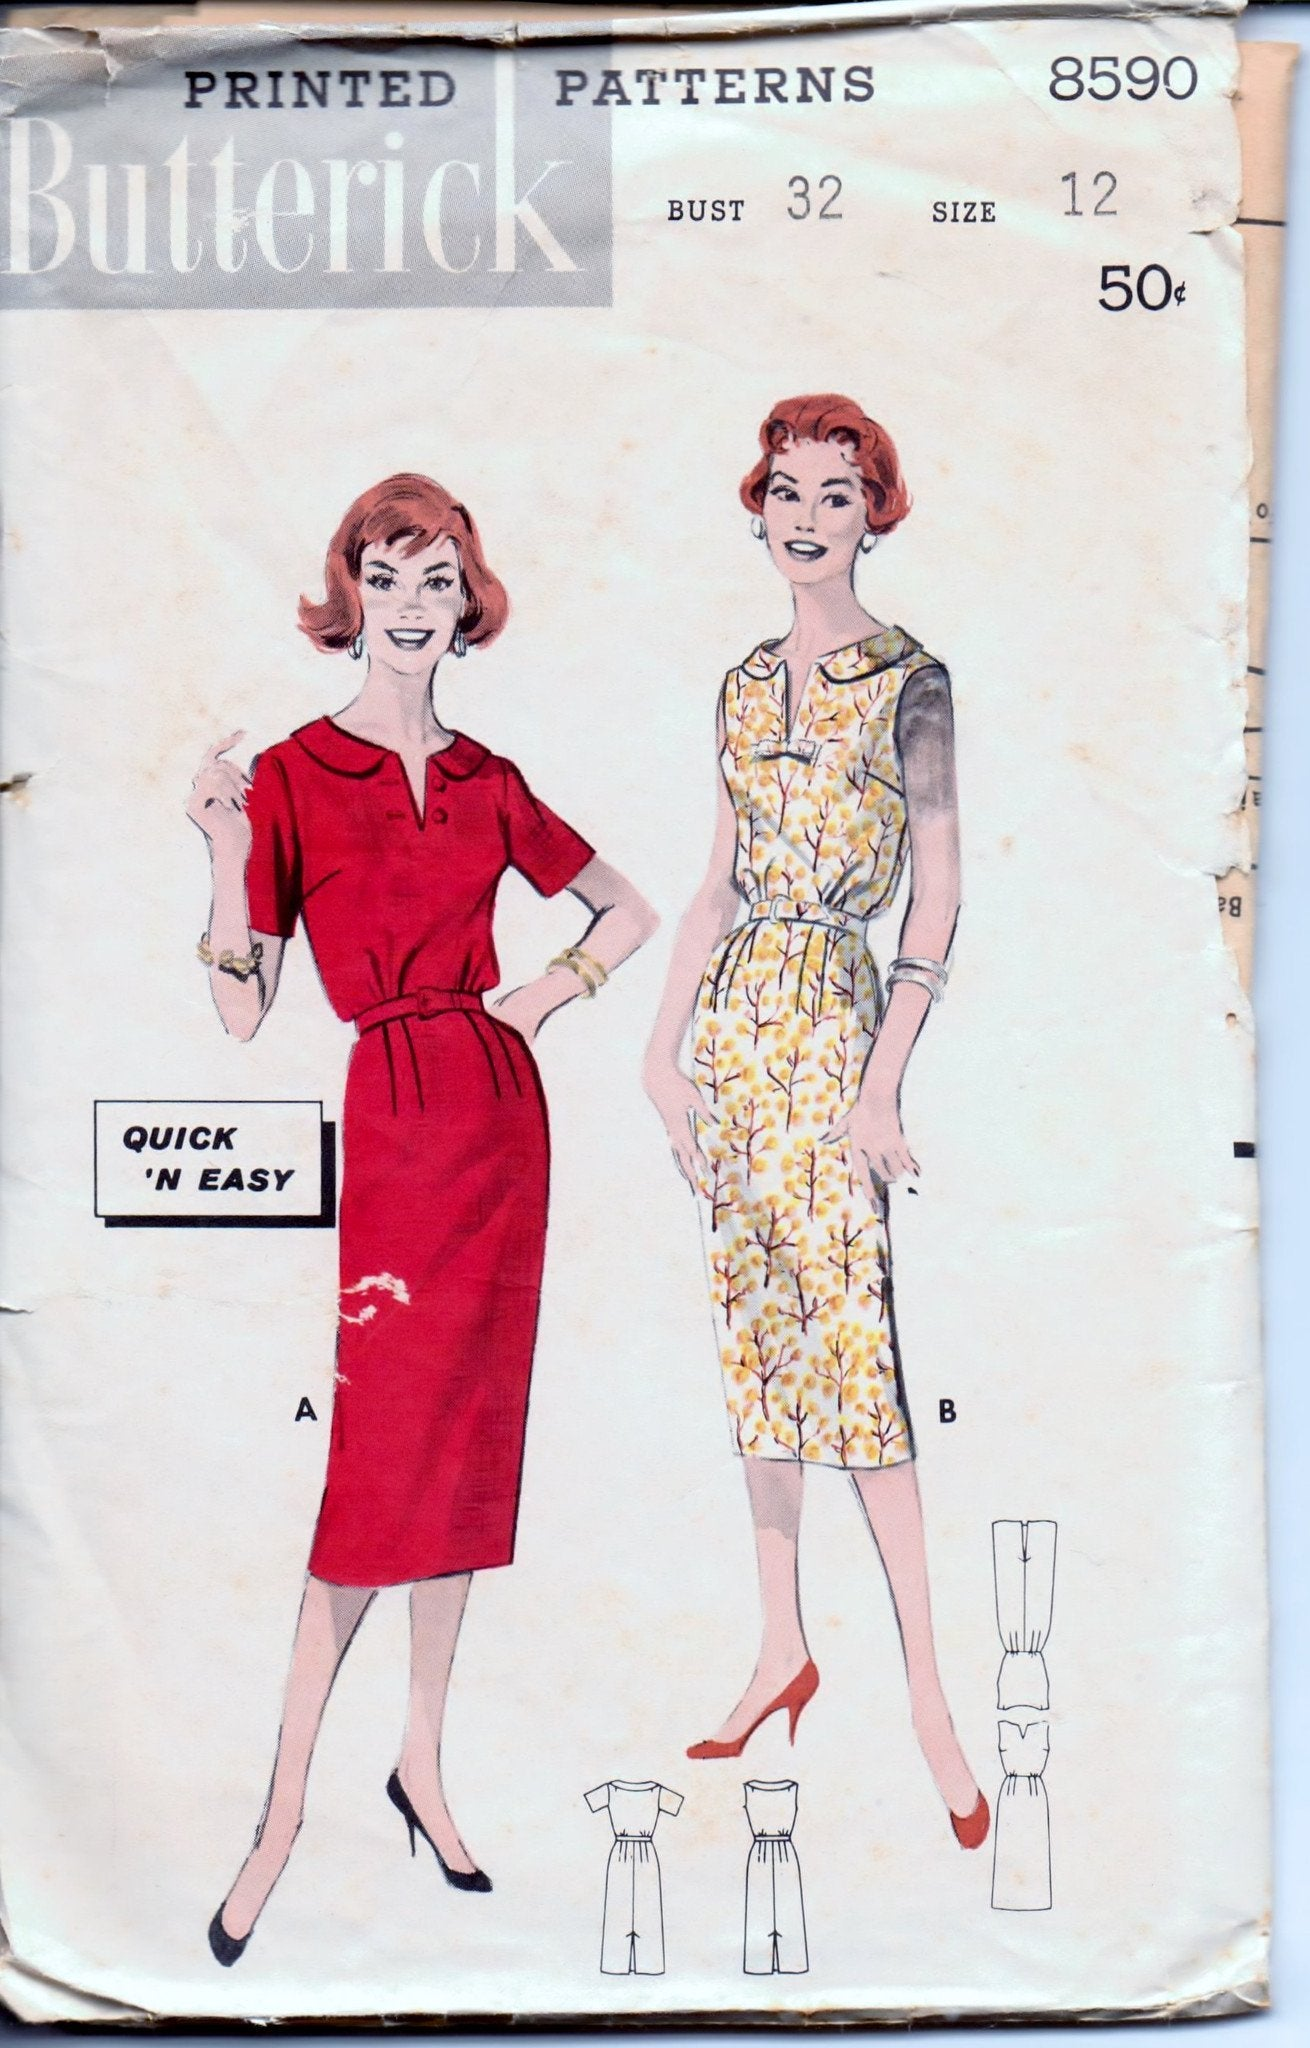 Butterick 8590 Ladies Bloused Dress Vintage 1950's Sewing Pattern - VintageStitching - Vintage Sewing Patterns